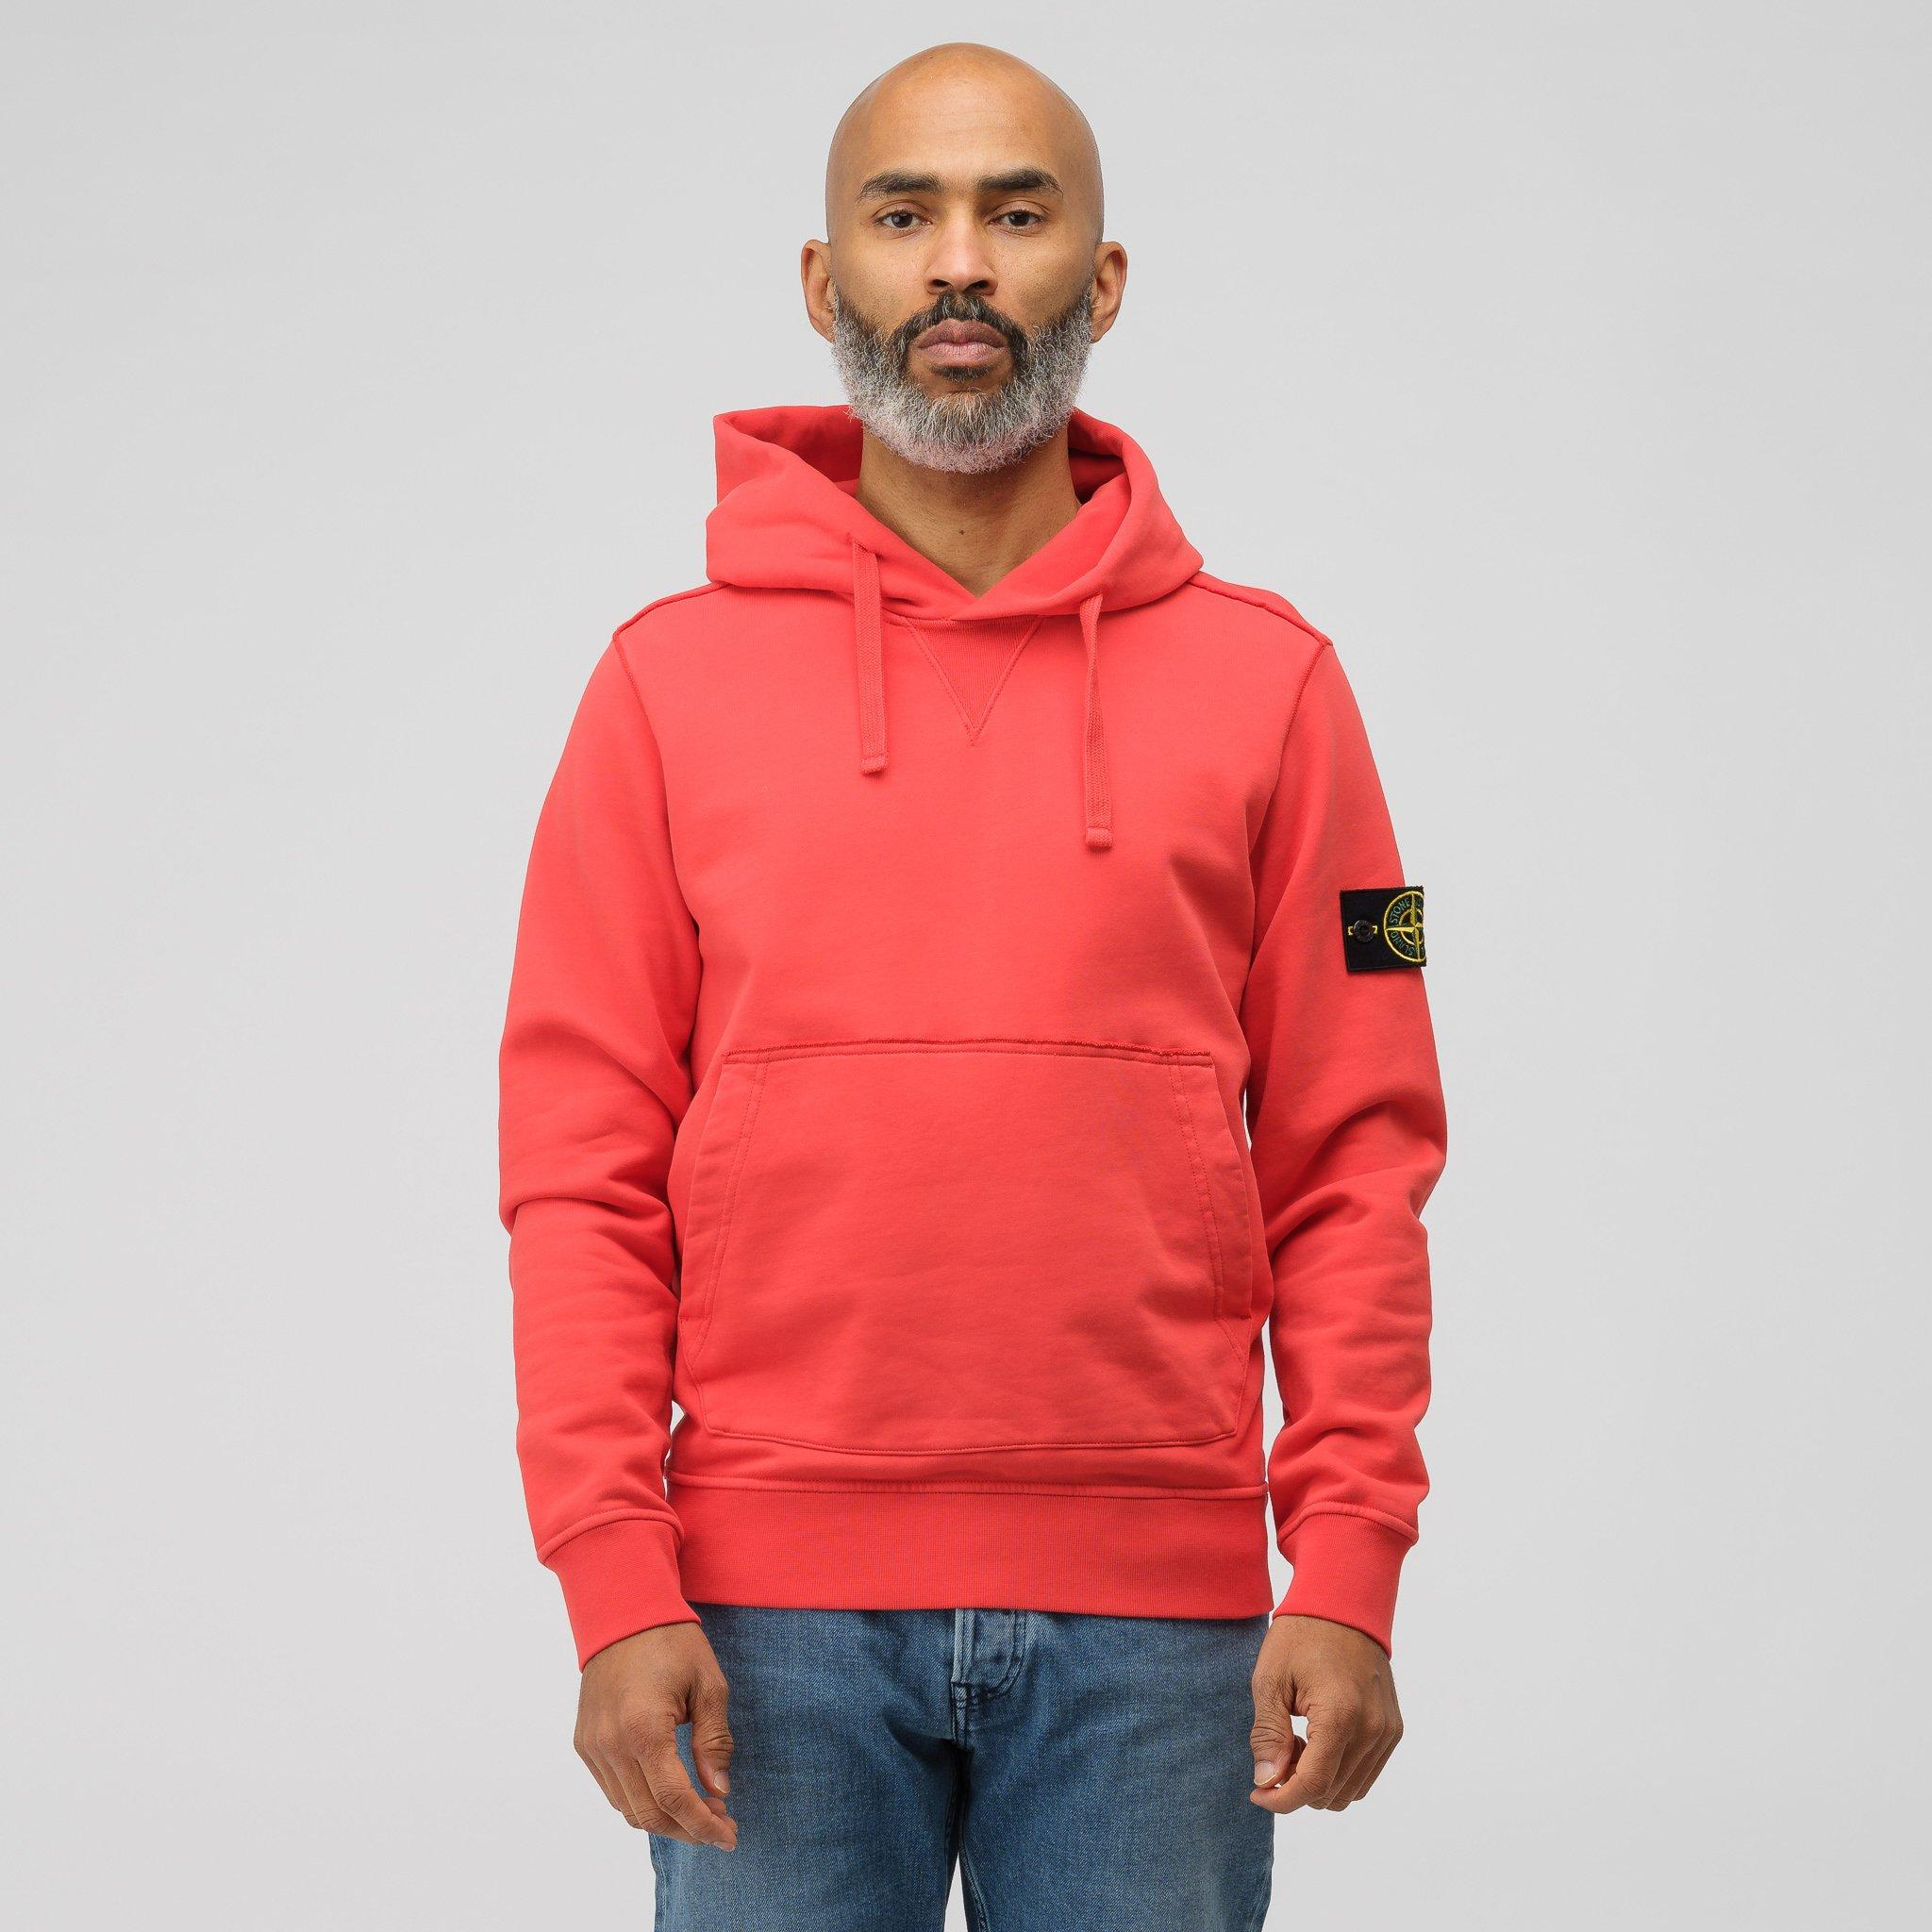 ac3d728dfce89 Lyst - Stone Island 62851 Pullover Hoodie In Red Orange in Red for Men